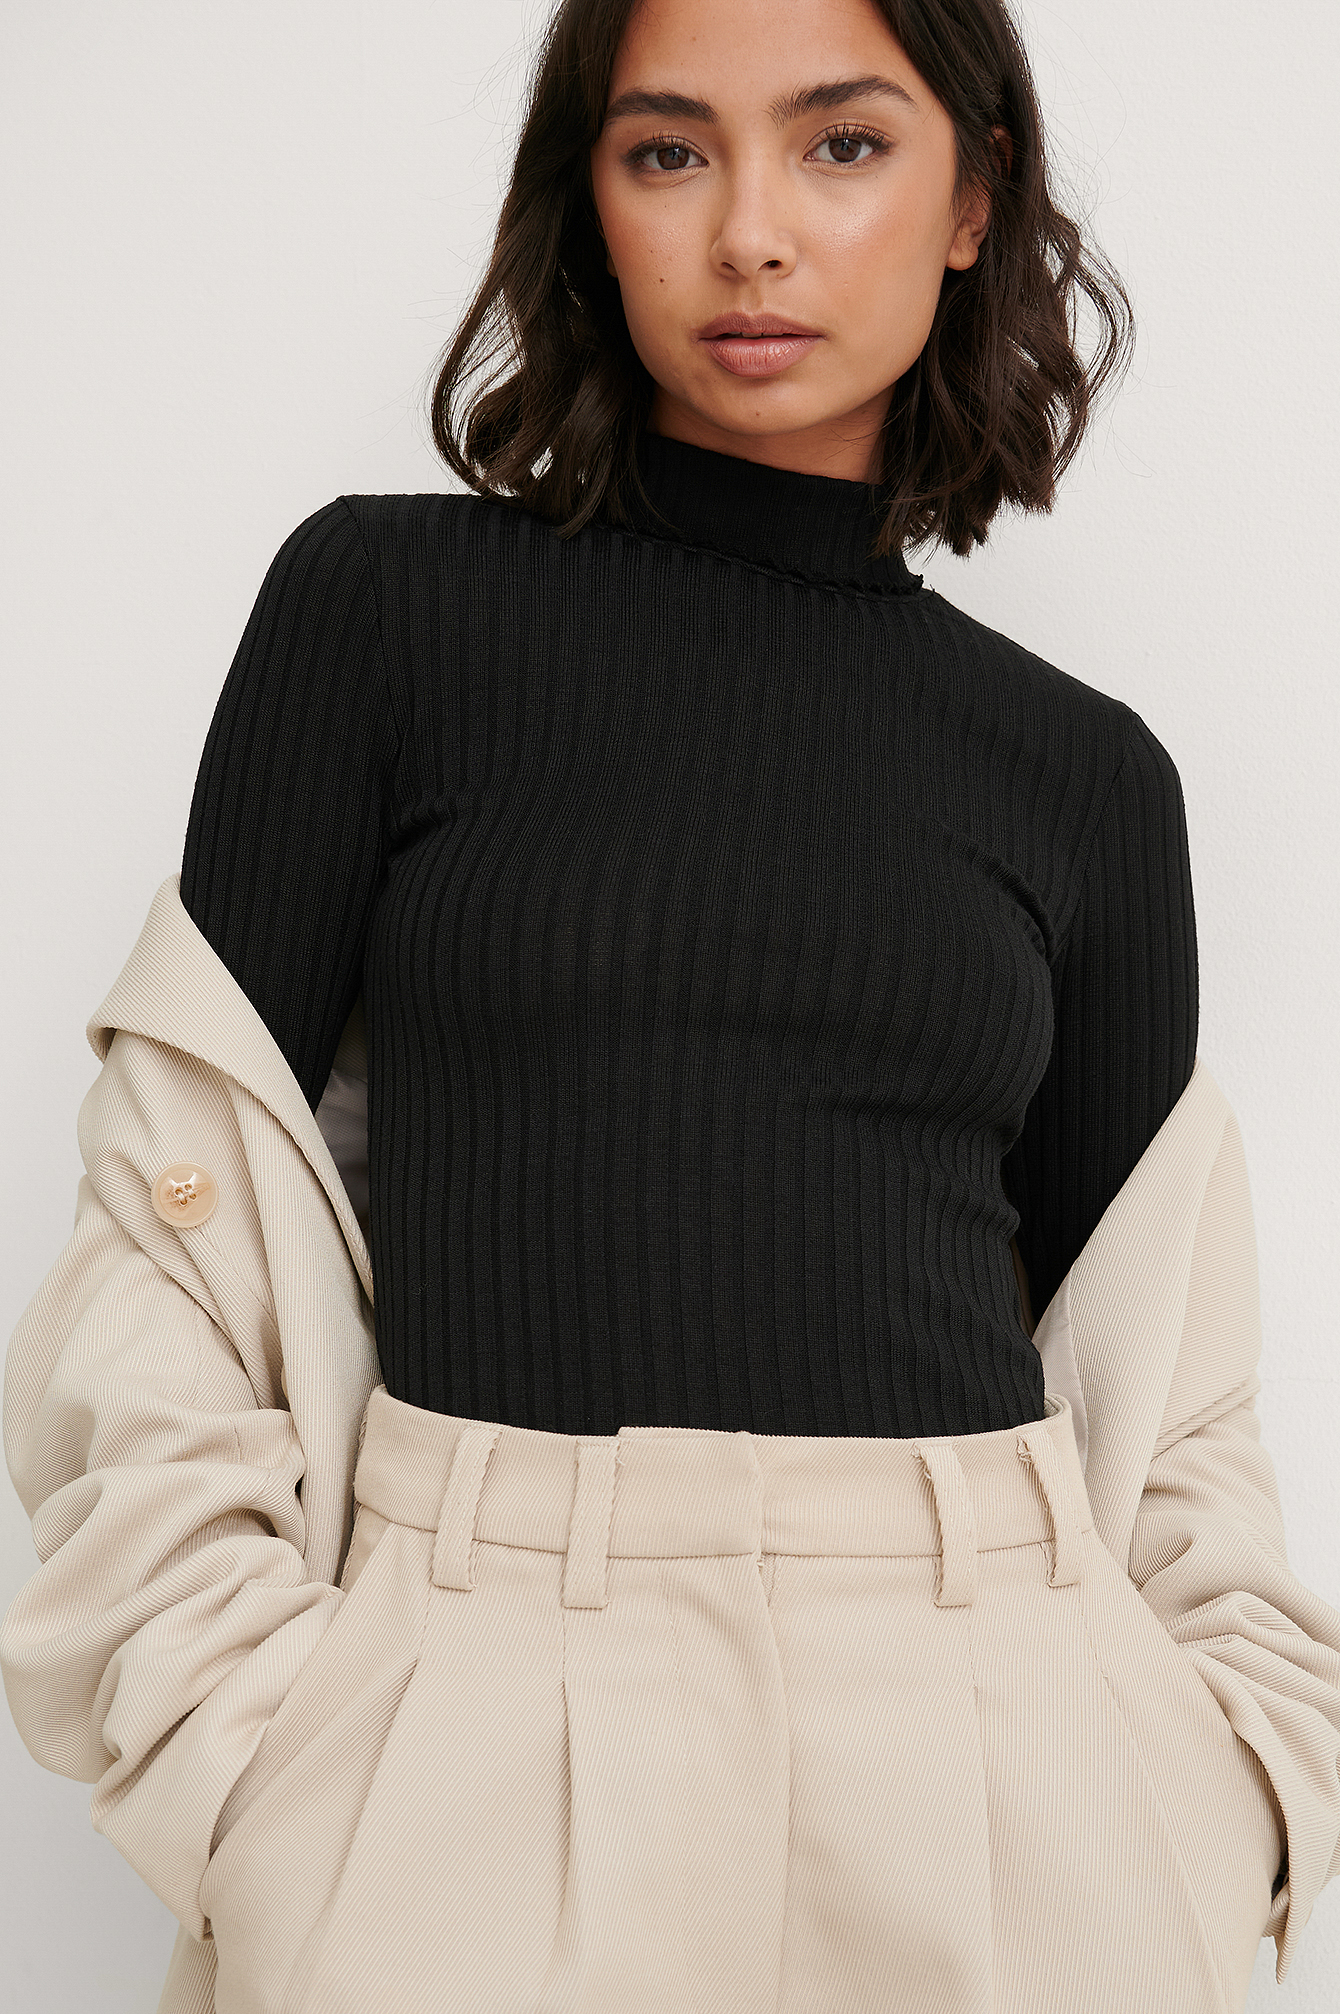 Black Recycled High Neck Long Sleeve Top